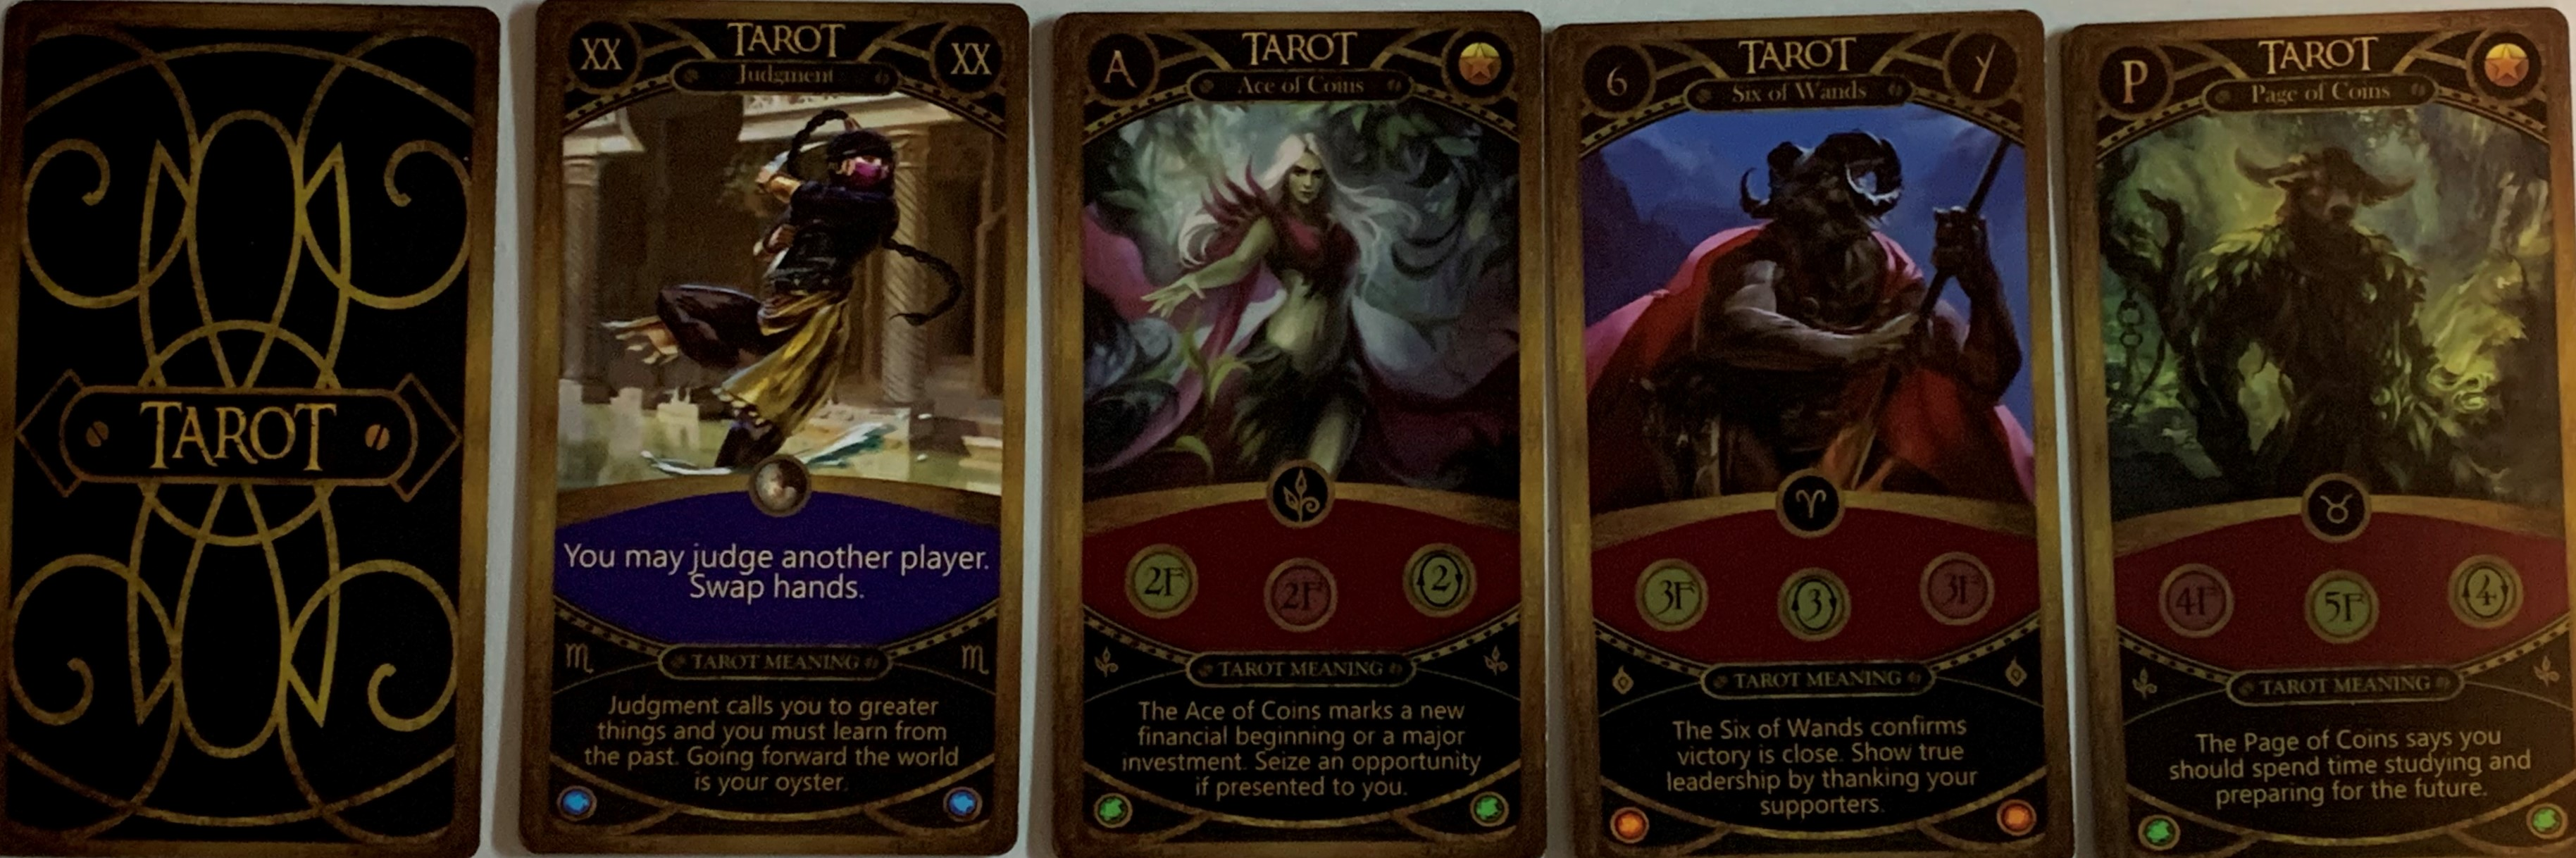 Zodiac War Tarot Cards